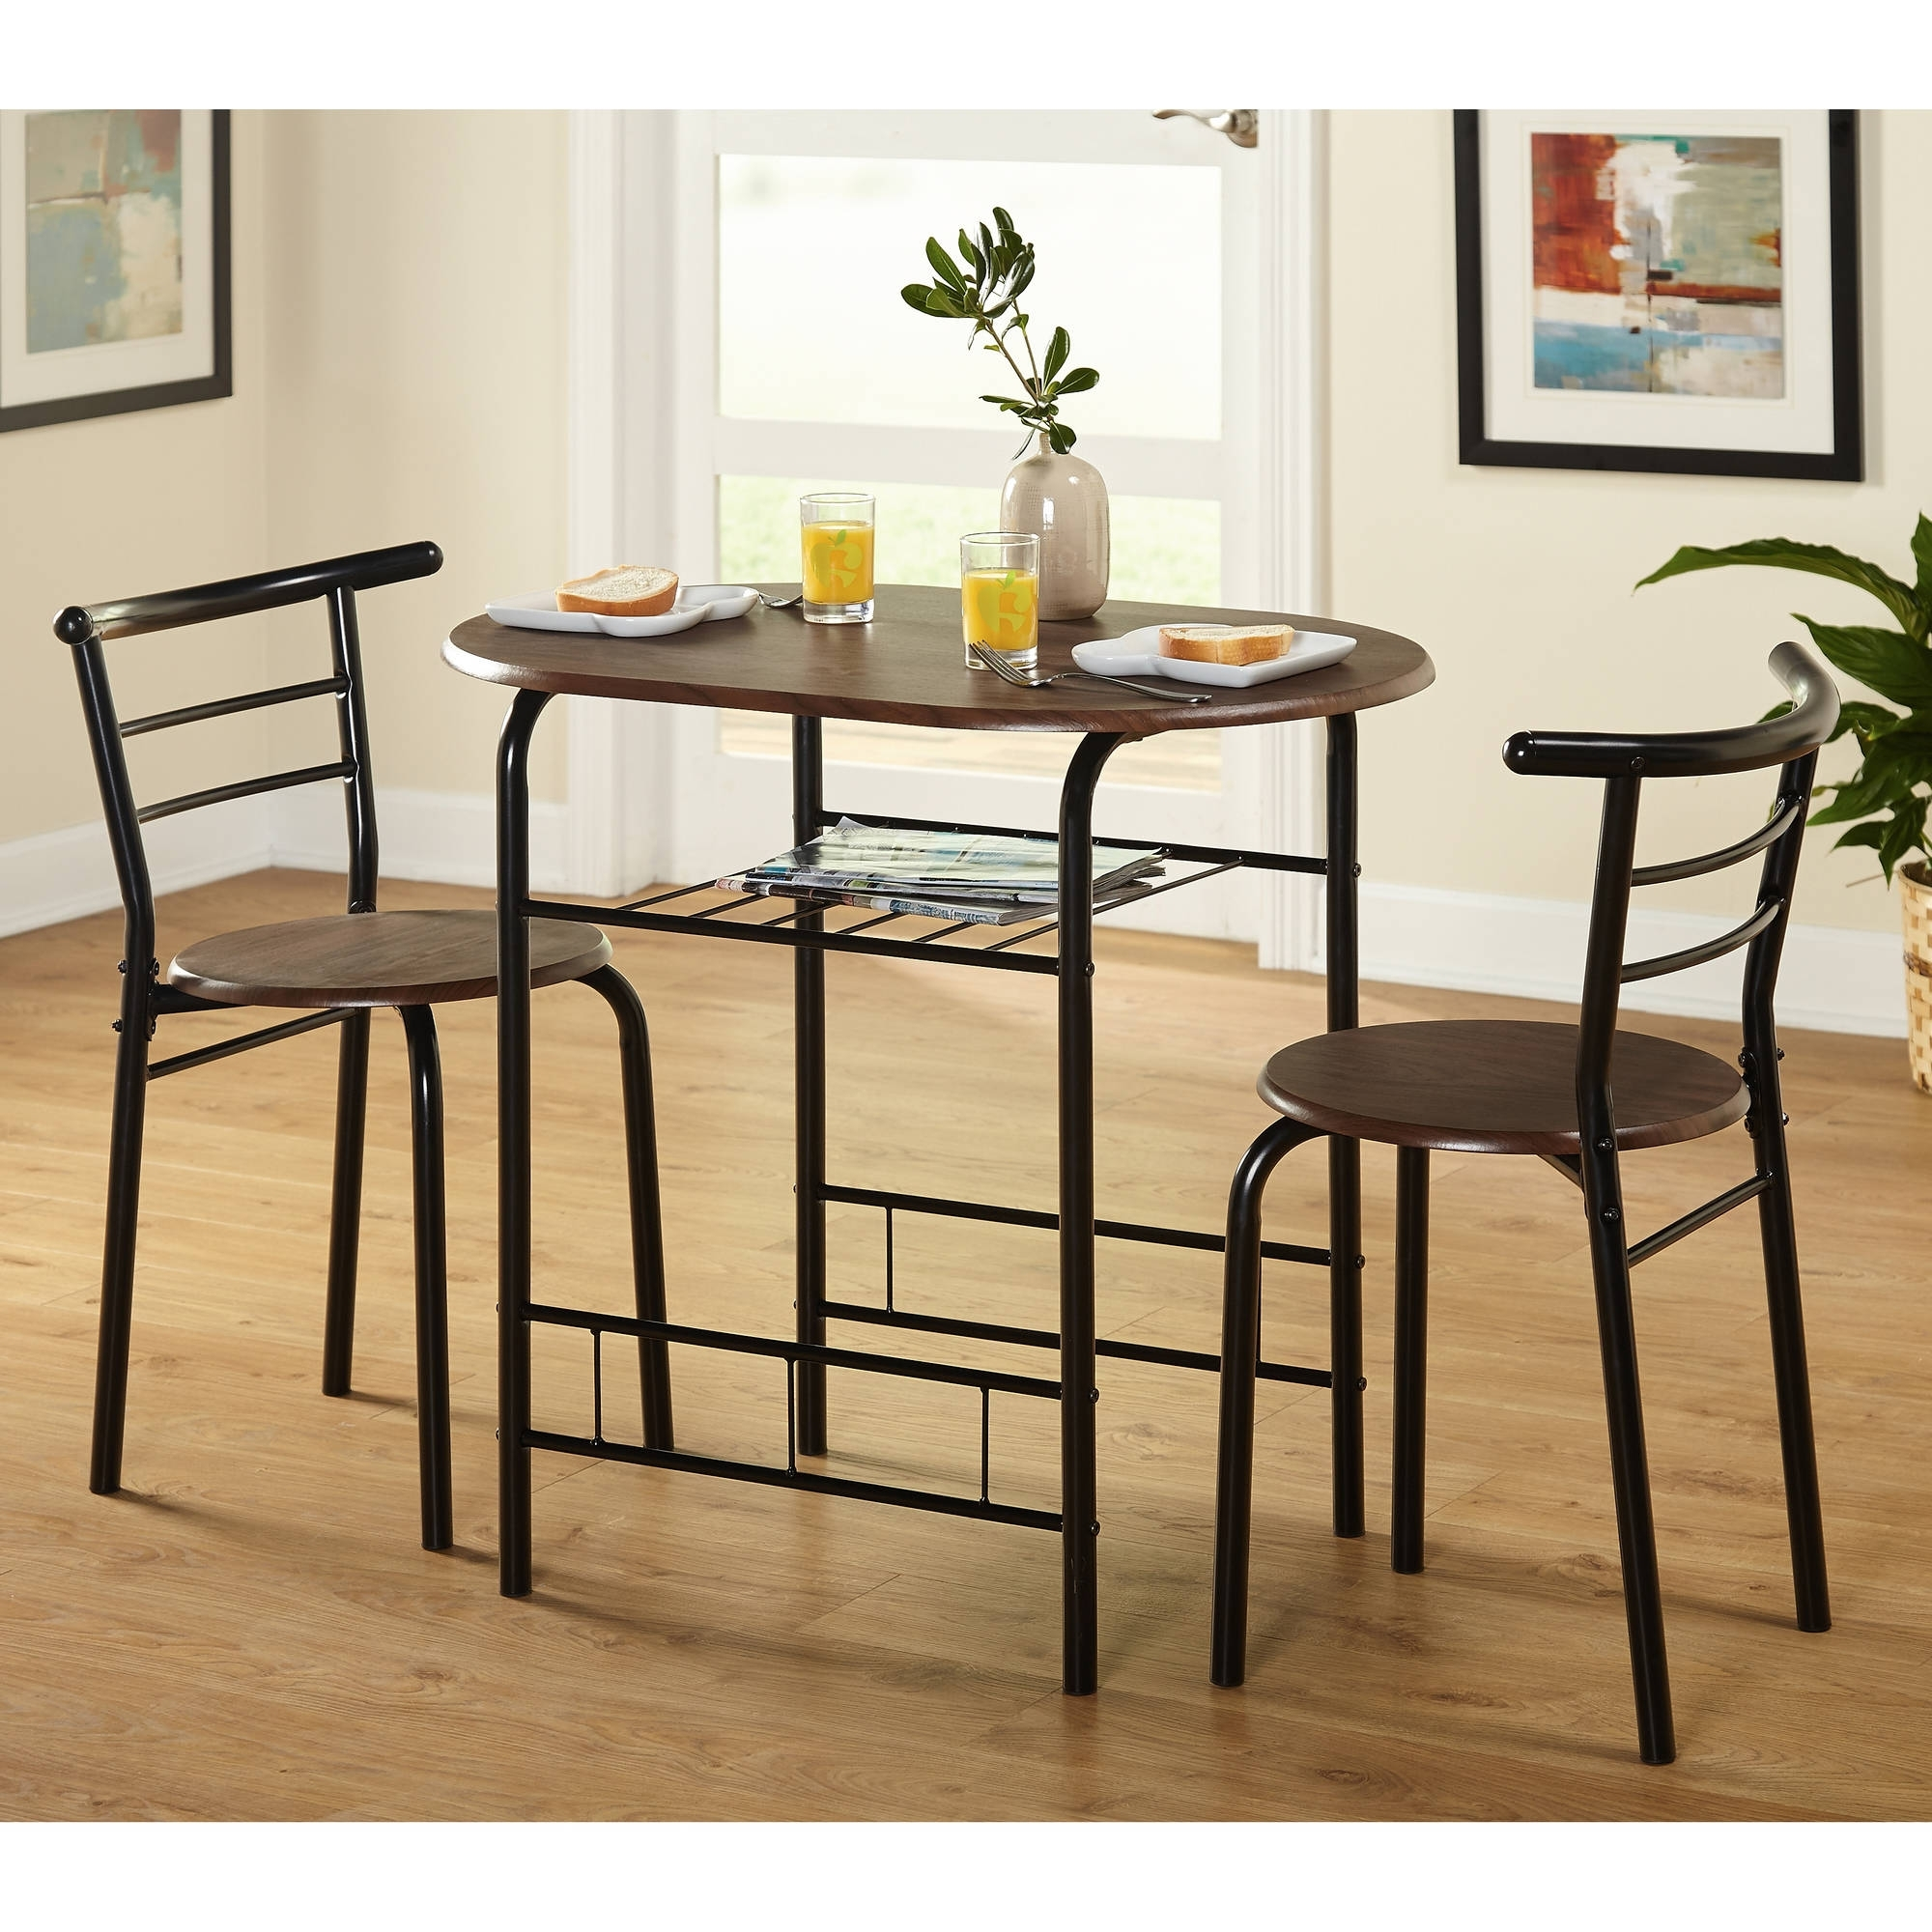 Famous Cheap Dining Tables Sets Intended For Tms 3 Piece Bistro Dining Set – Walmart (View 6 of 25)